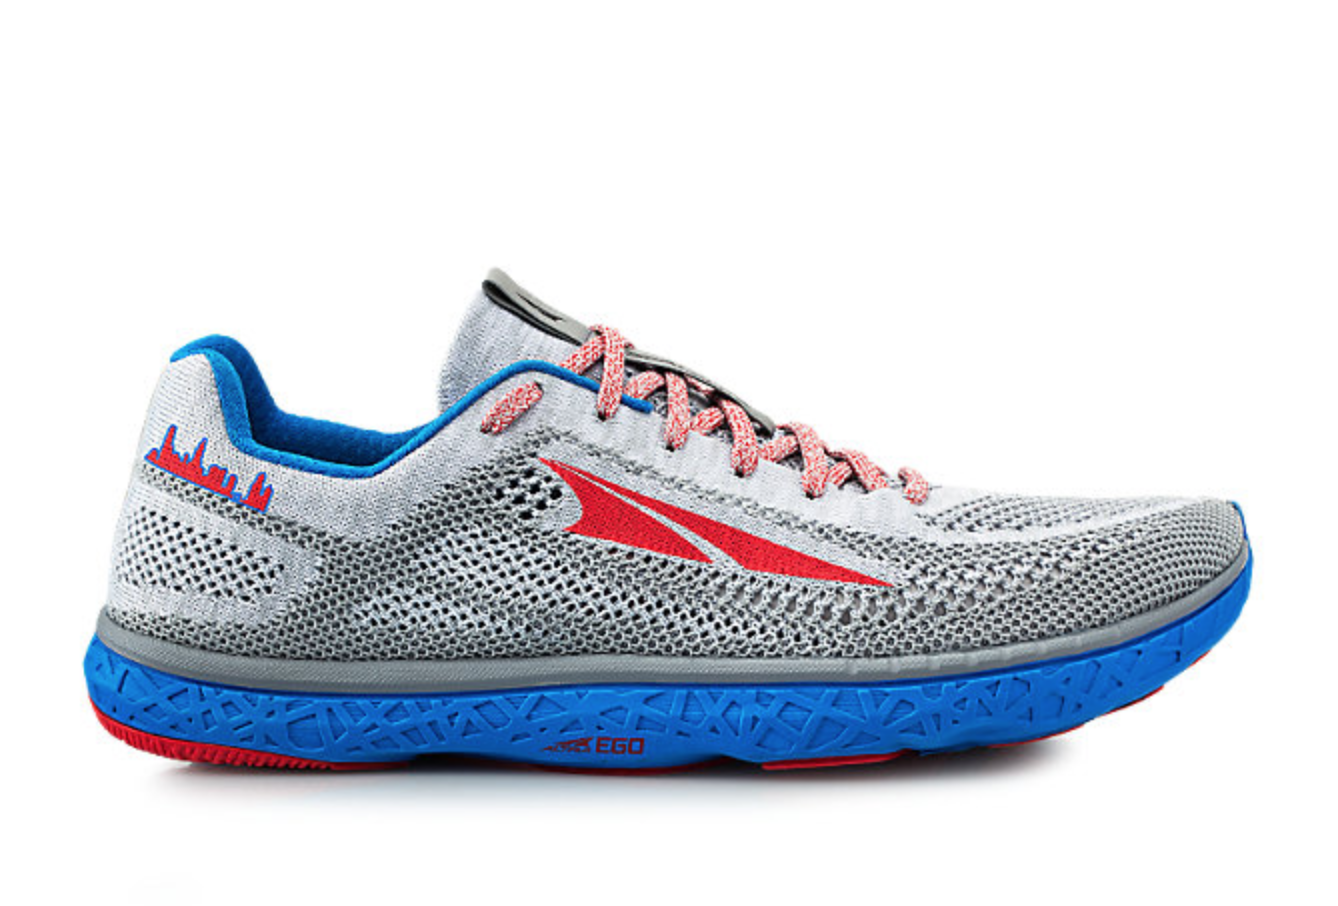 Altra Running Shoes 2019 | Altra Shoe